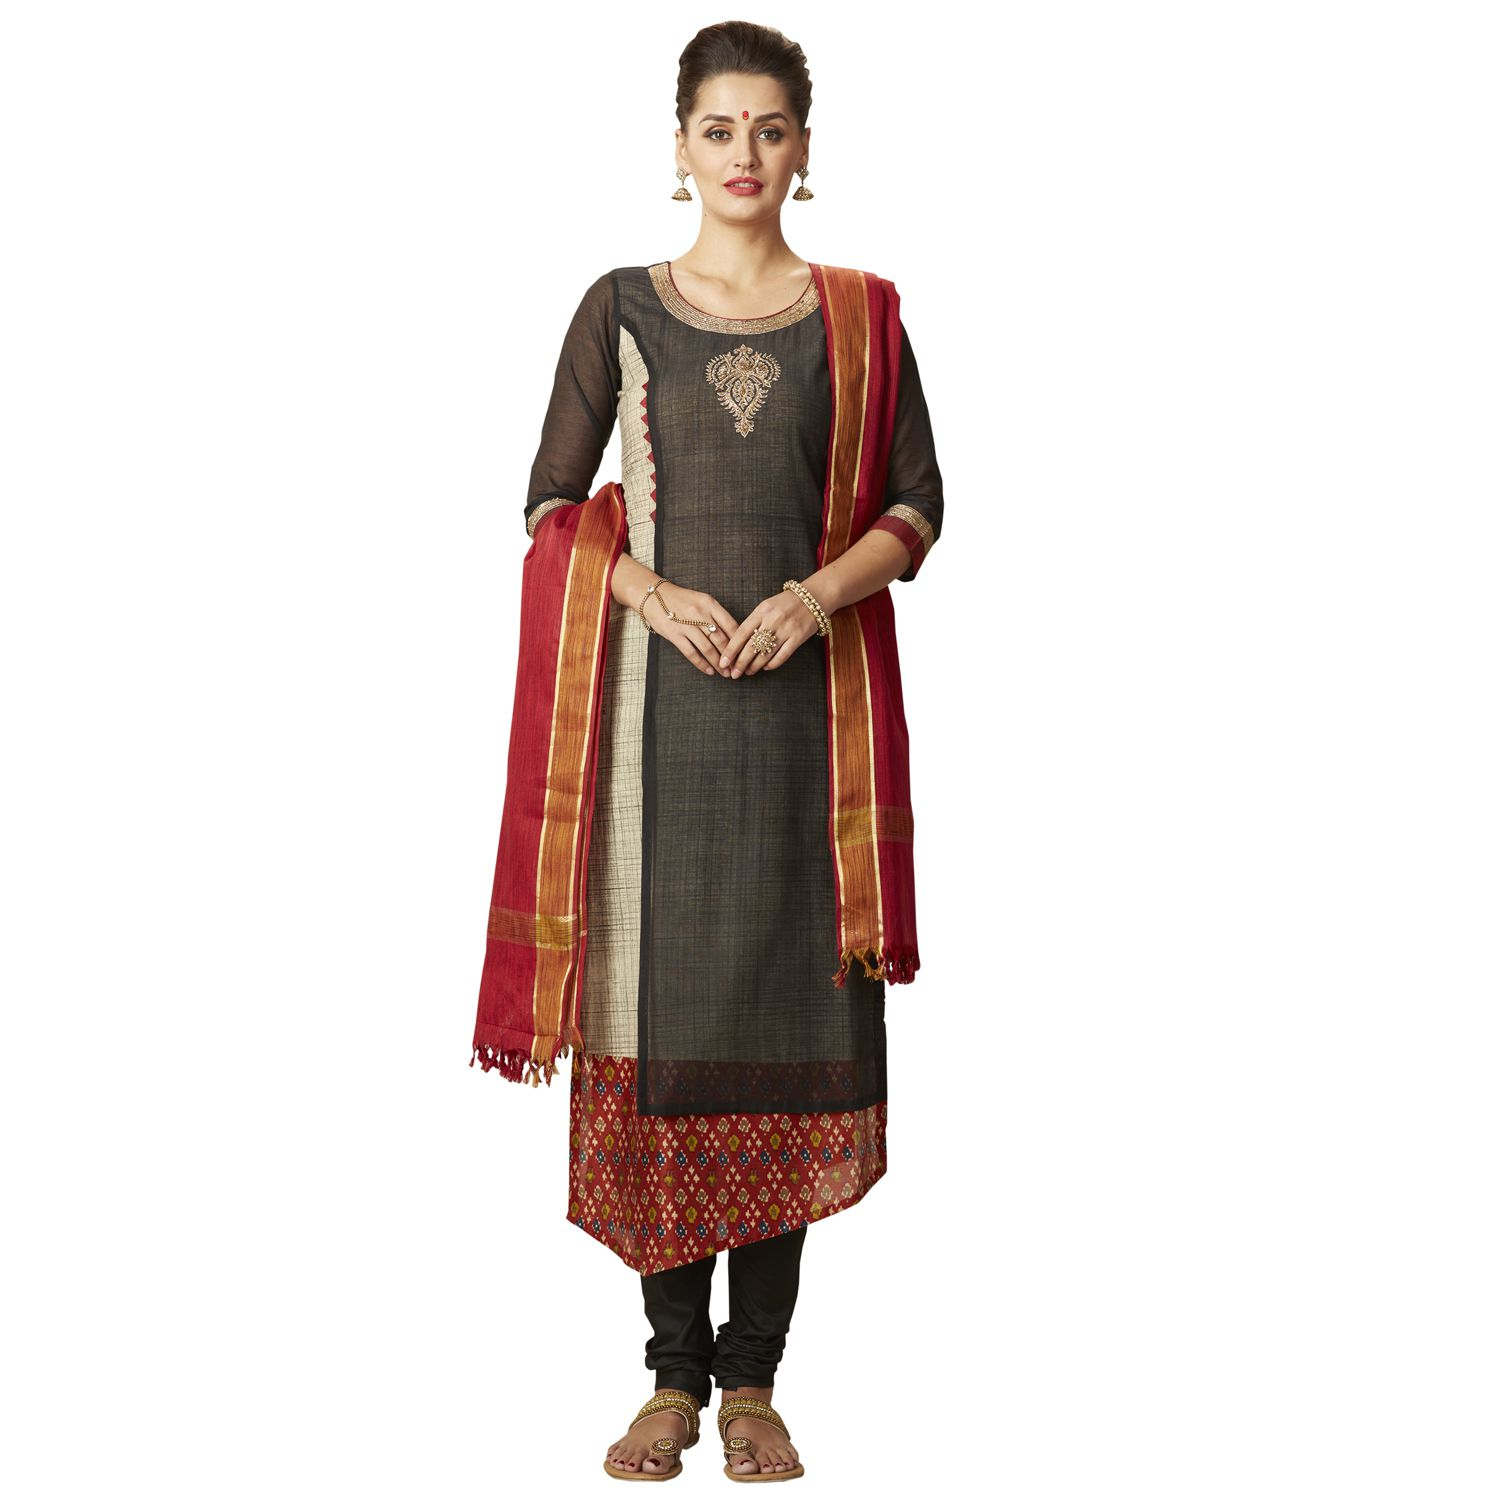 Payal Black Chanderi Asymmetrical Hemline Stitched Suit